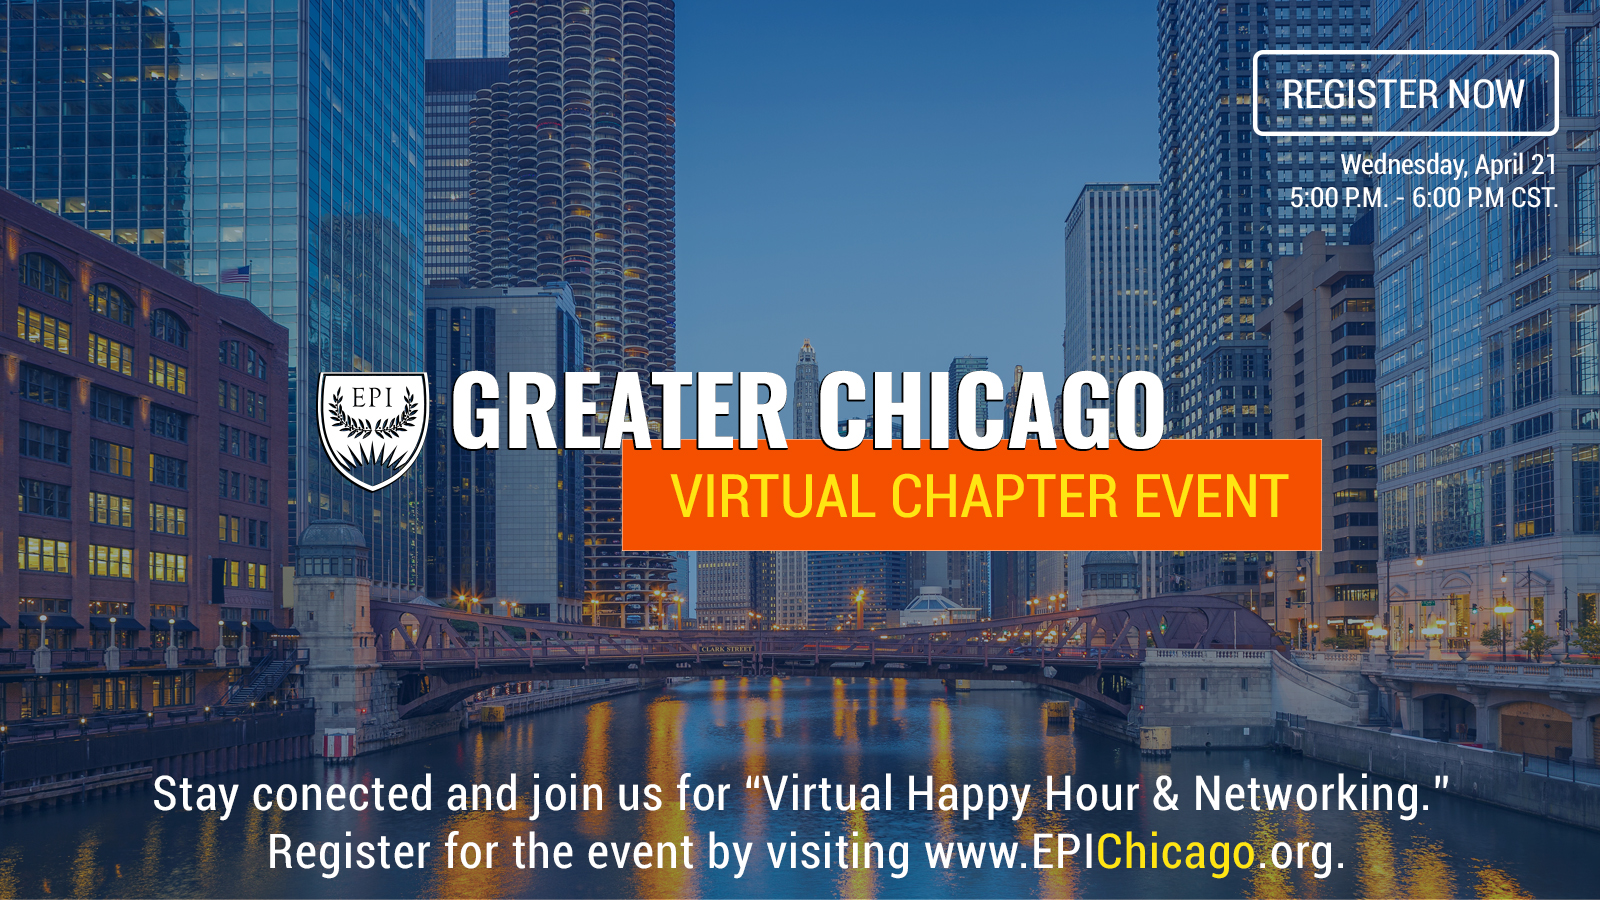 Virtual Happy Hour & Networking